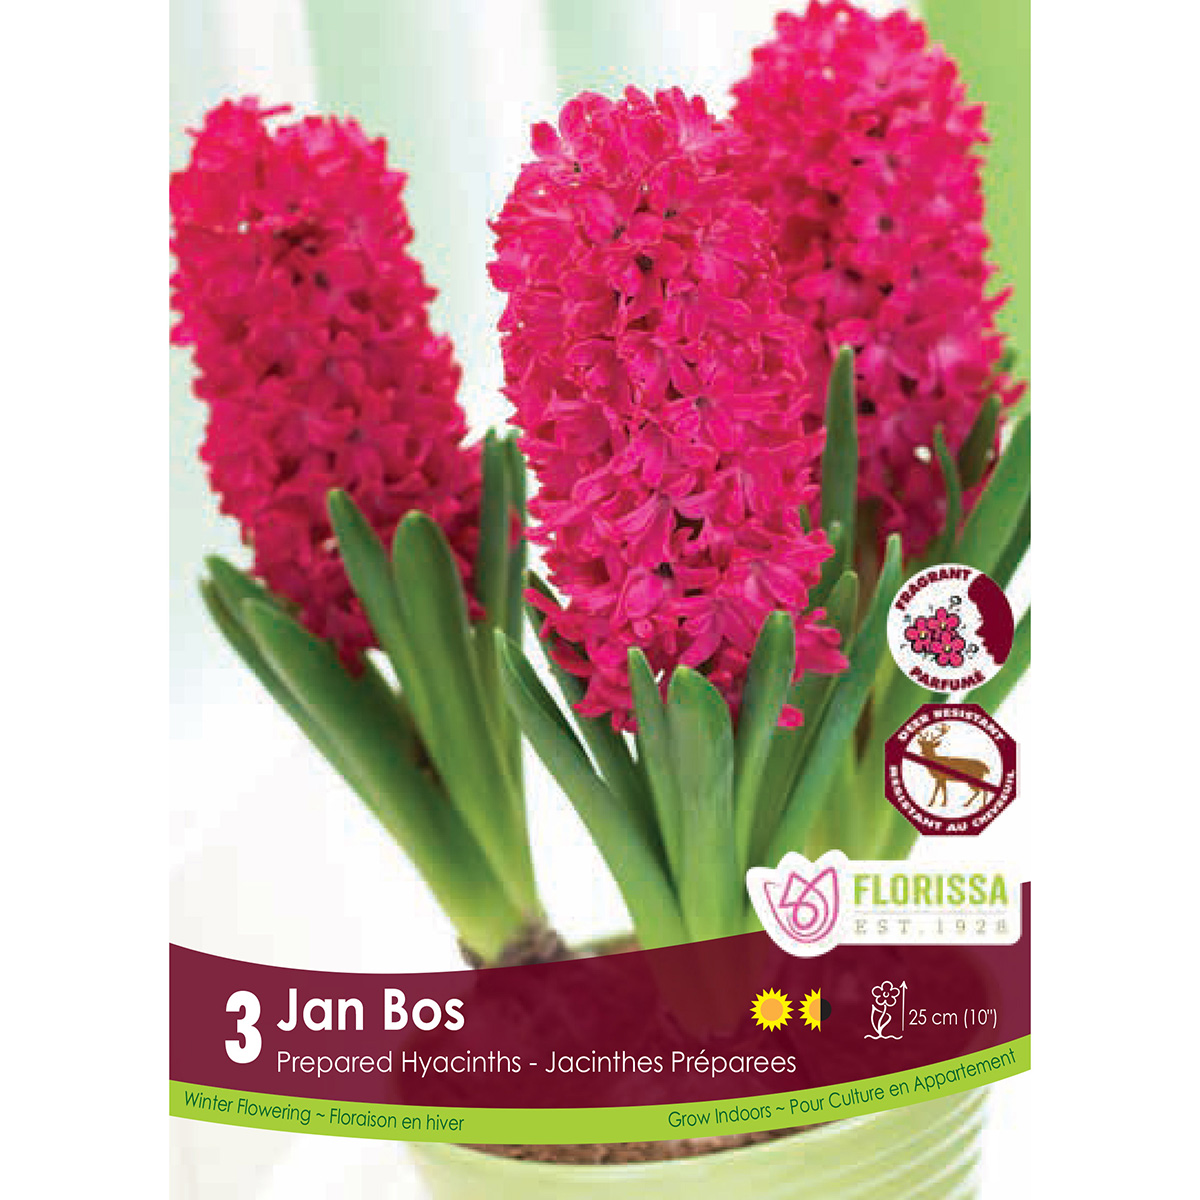 Prepared Hyacinth 'Jan Bos' Bulbs